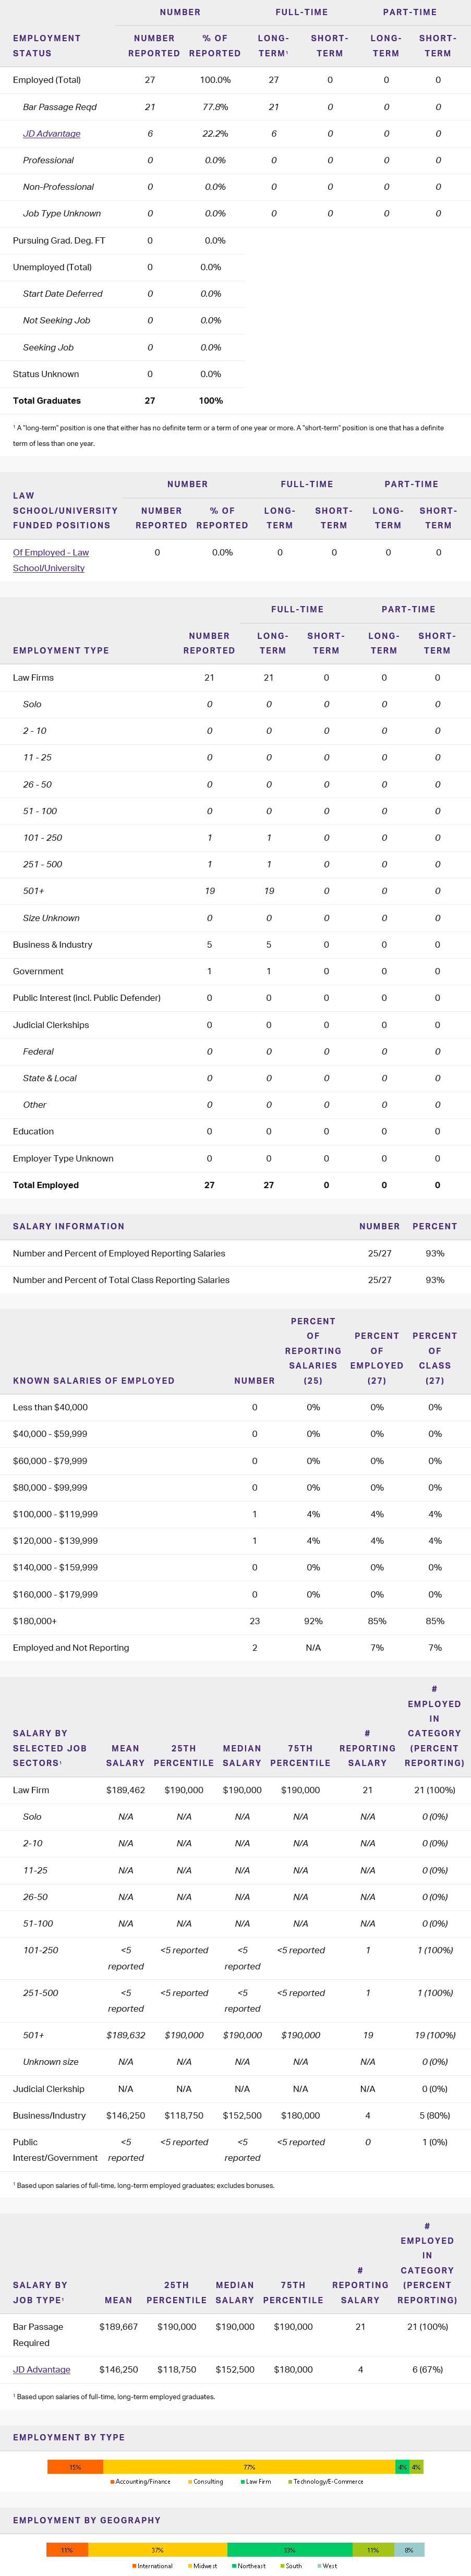 JDMBA 2018 EMPLOYMENT STATISTICS TABLE